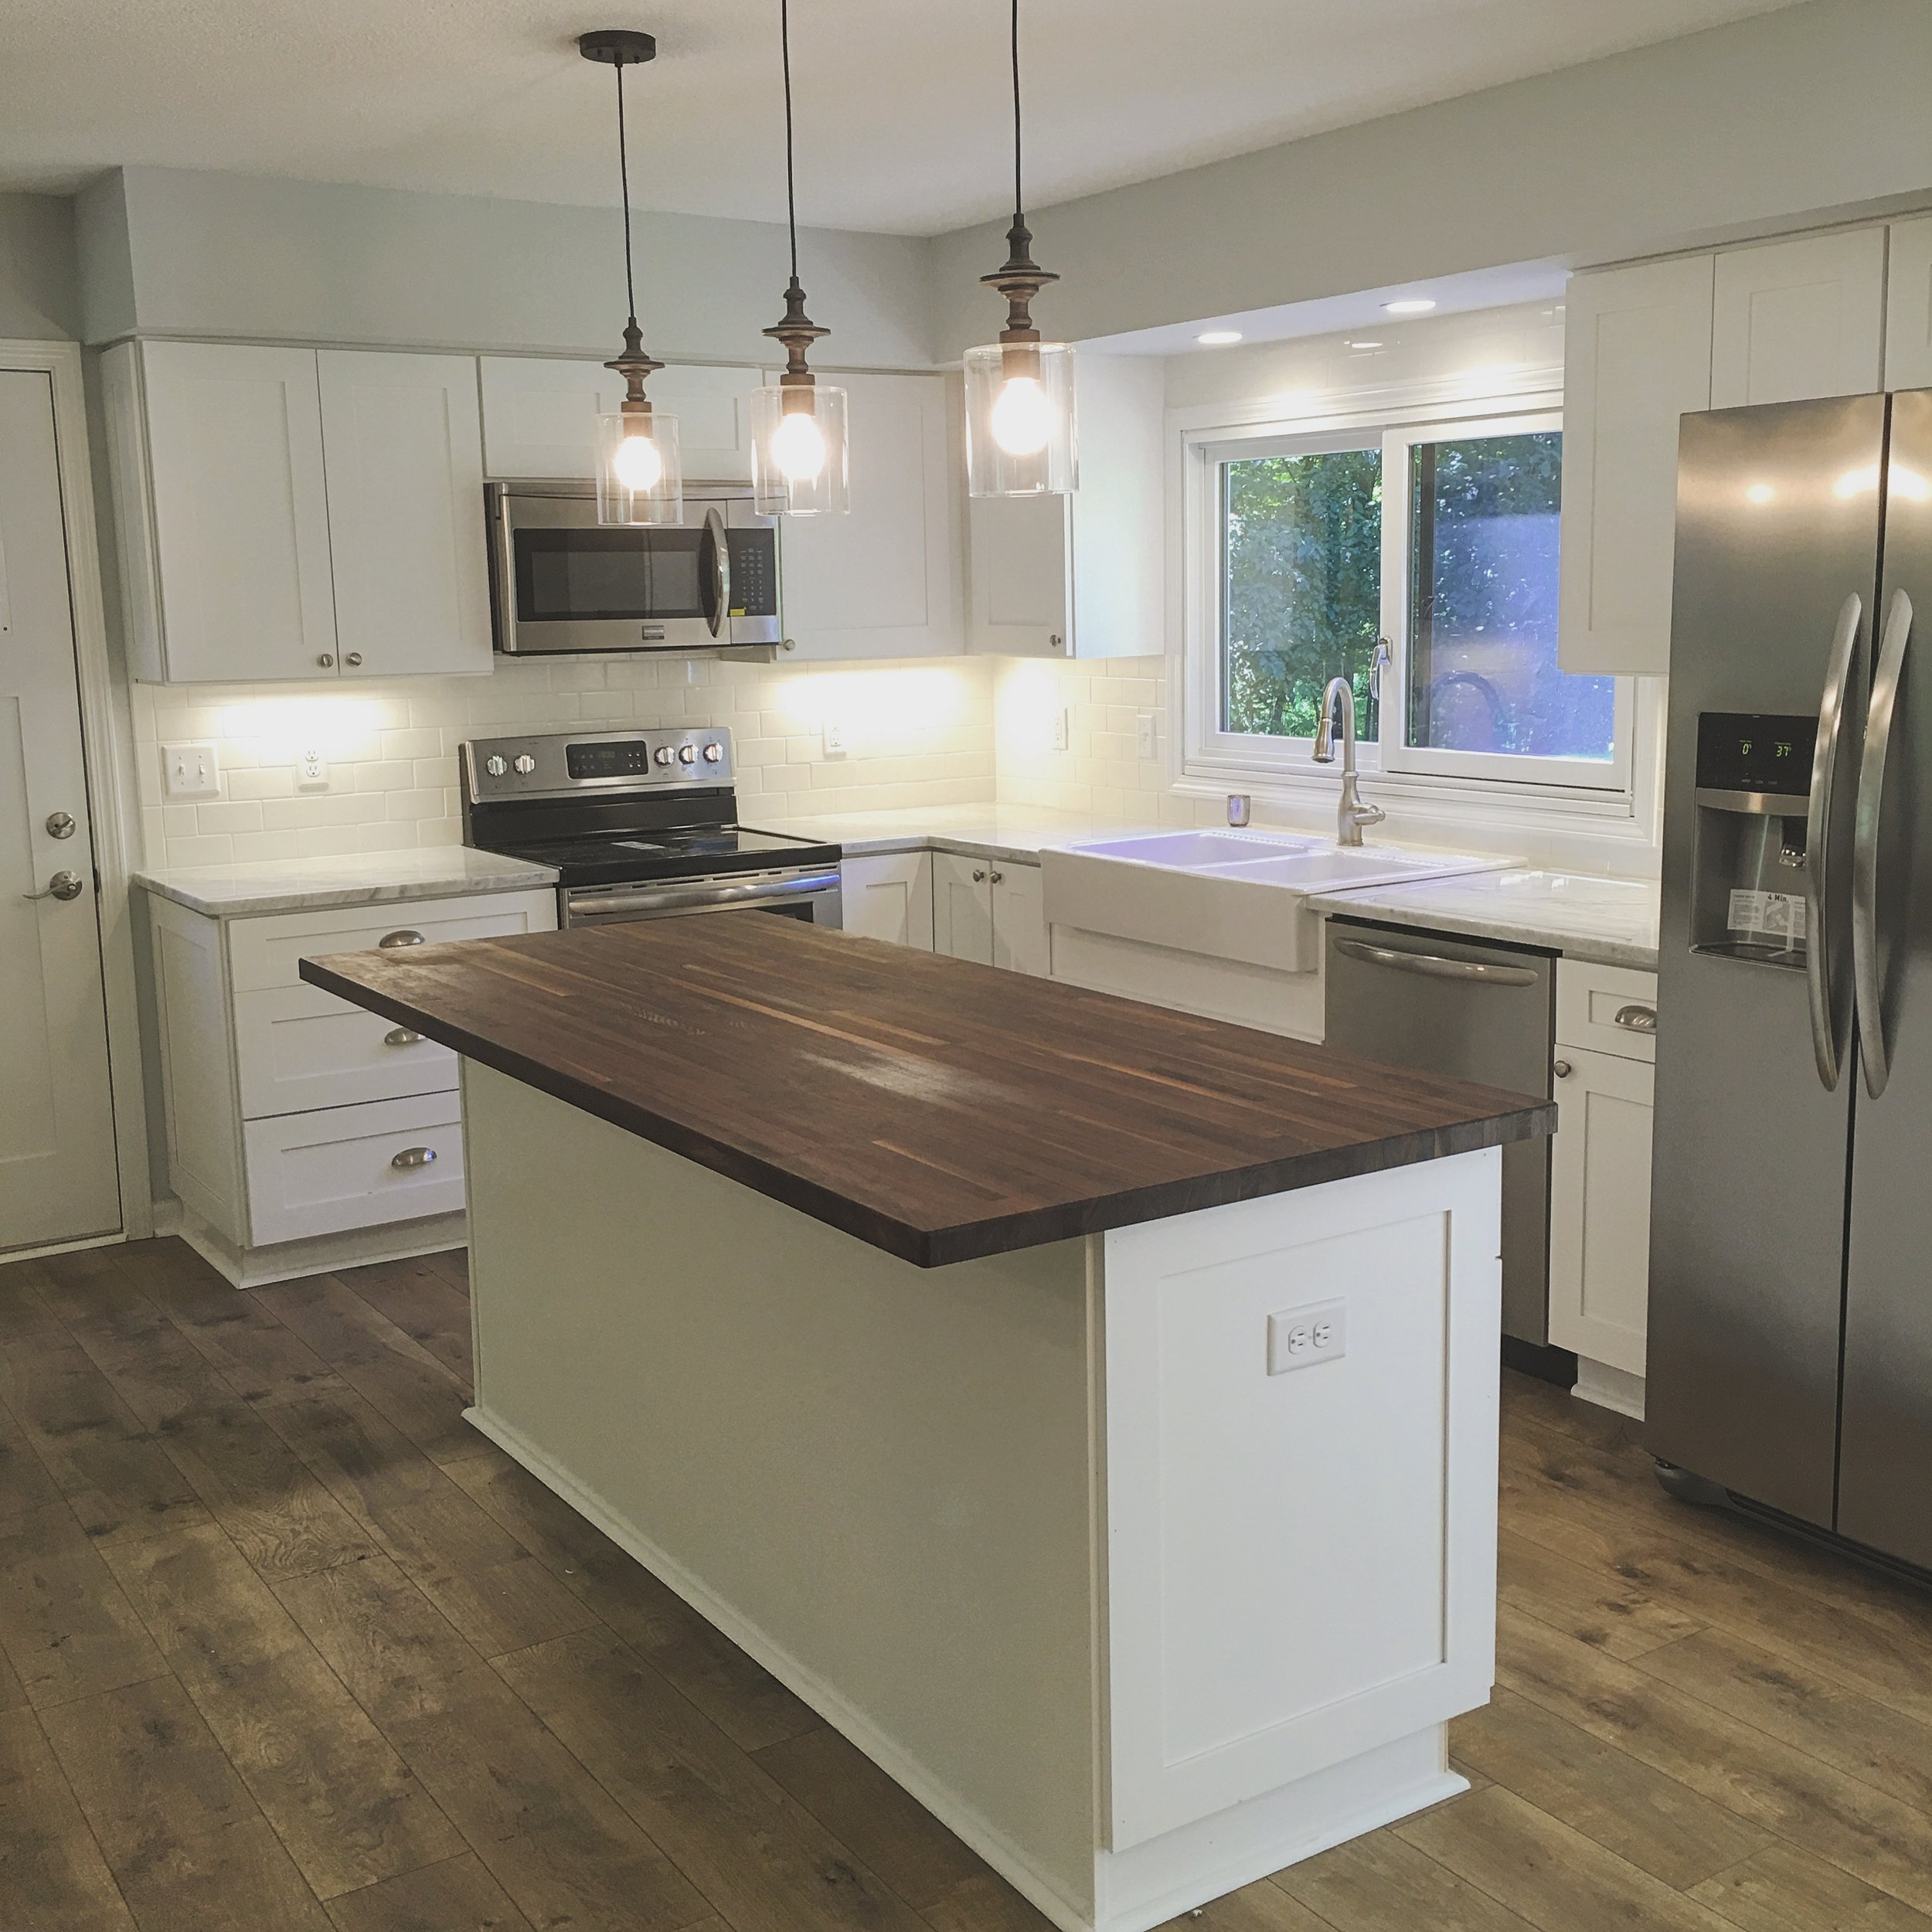 Rustic kitchen with marble countertops, walnut butcher block, laminate flooring, and farmhouse sink. Before and after of home remodel in Minnesota